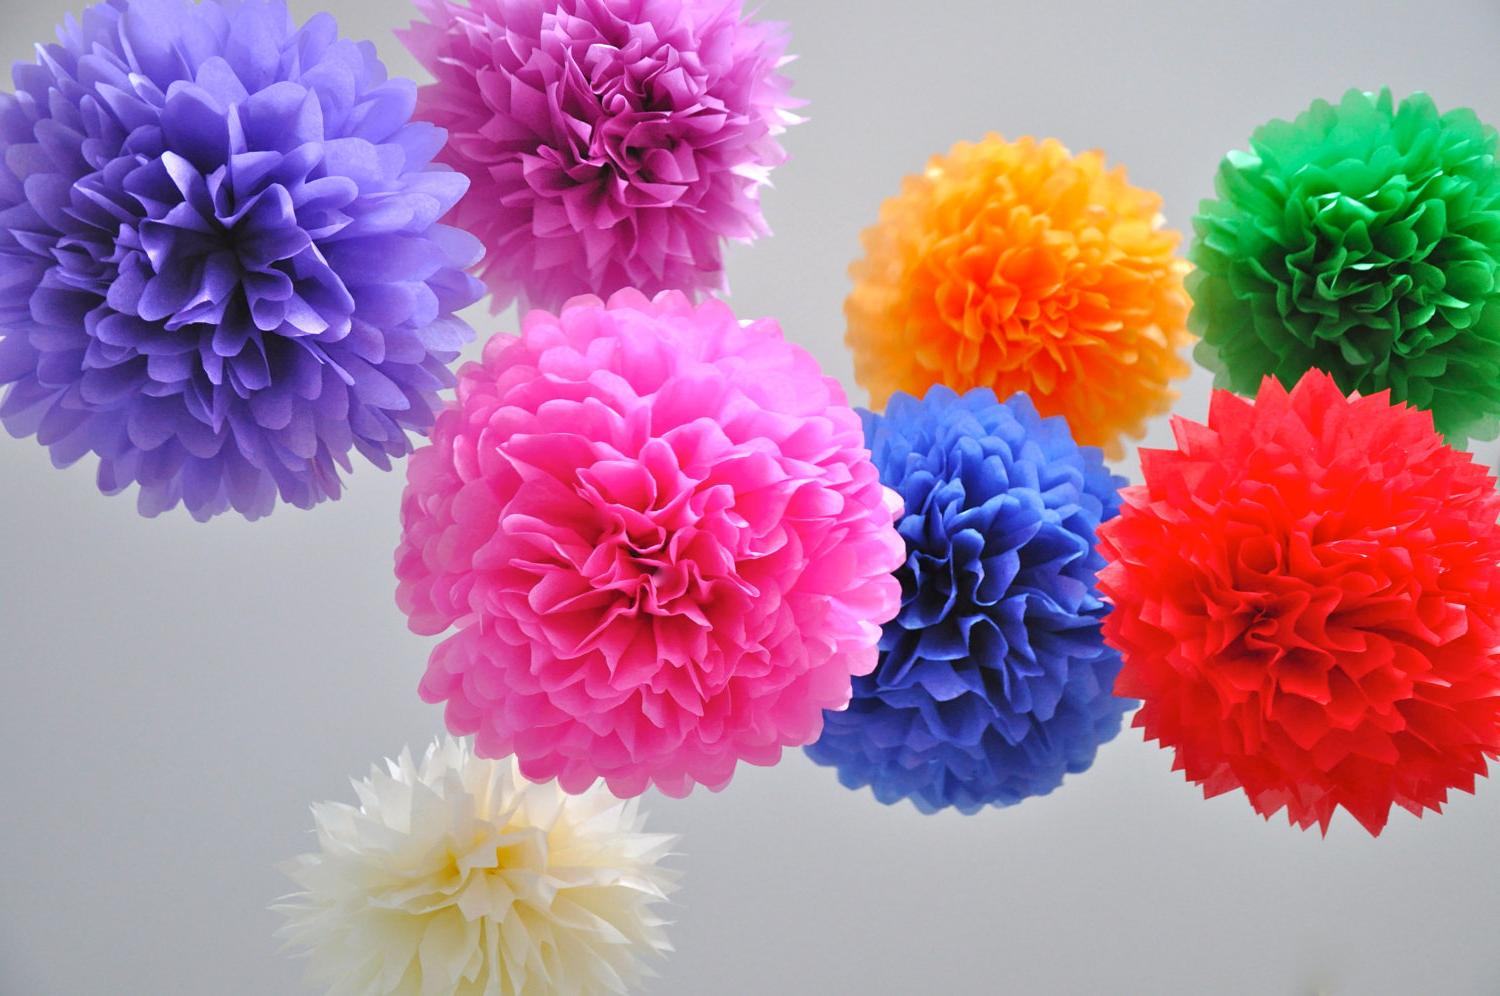 tissue paper pom poms - Wedding Decor Collection - SALE - 40 poms - pick